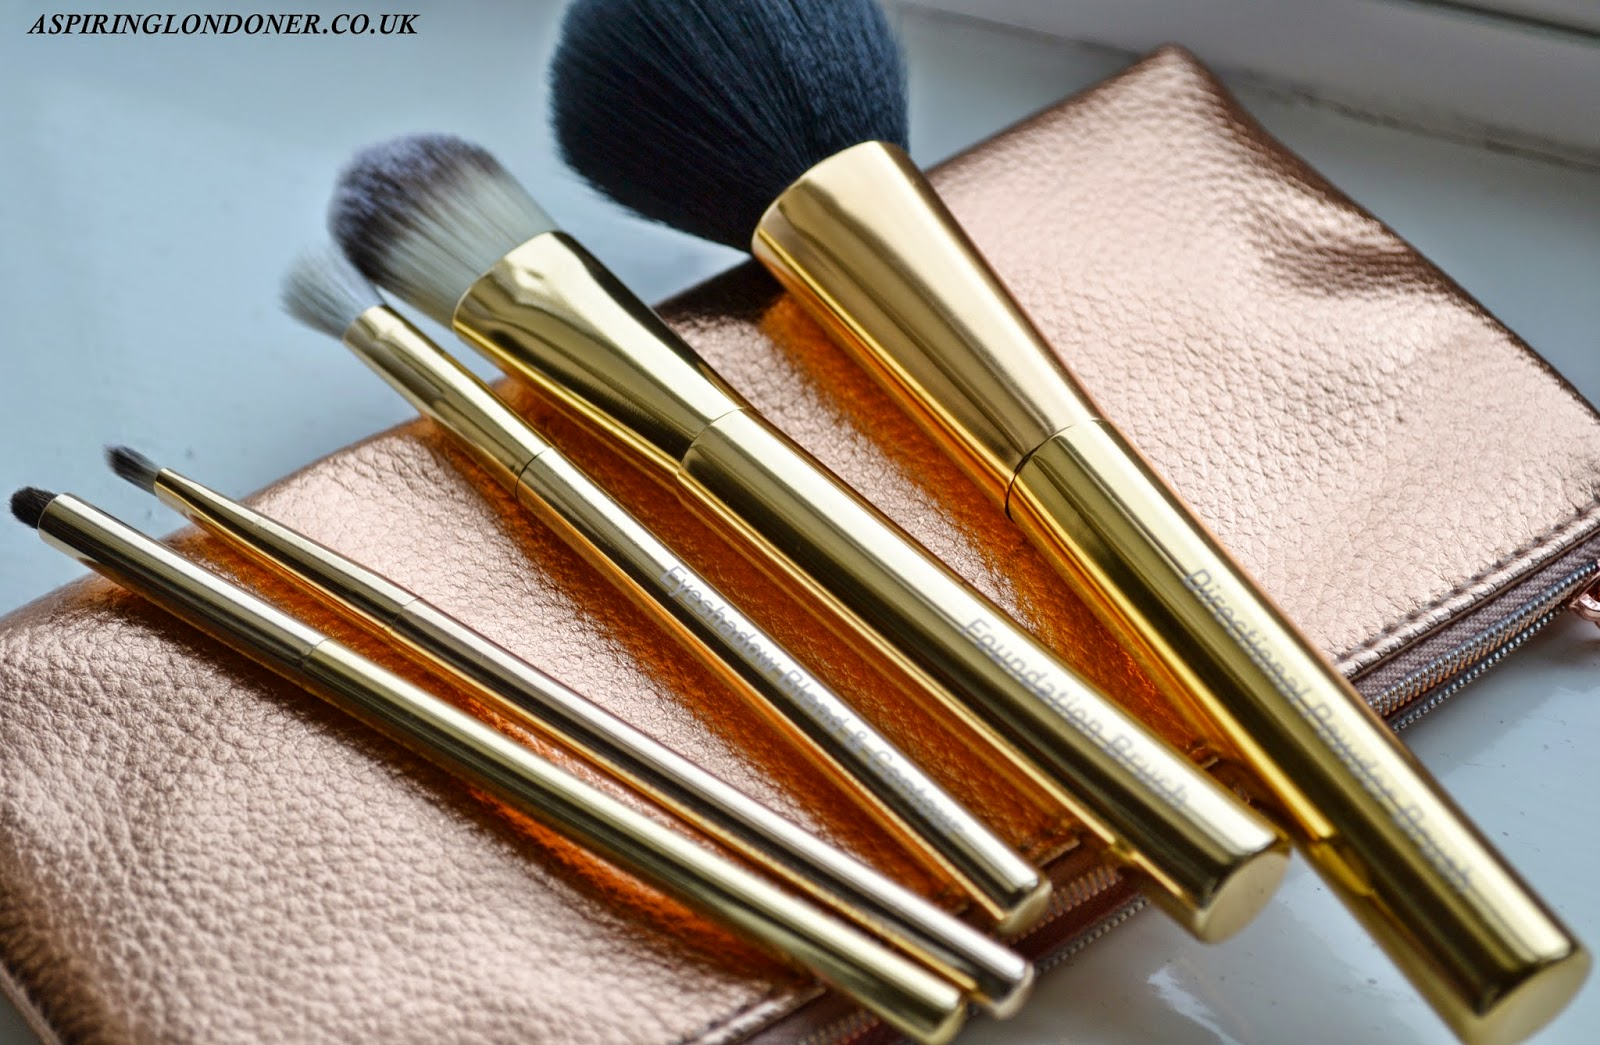 No7 Brush Collection and Purse Review - Aspiring Londoner